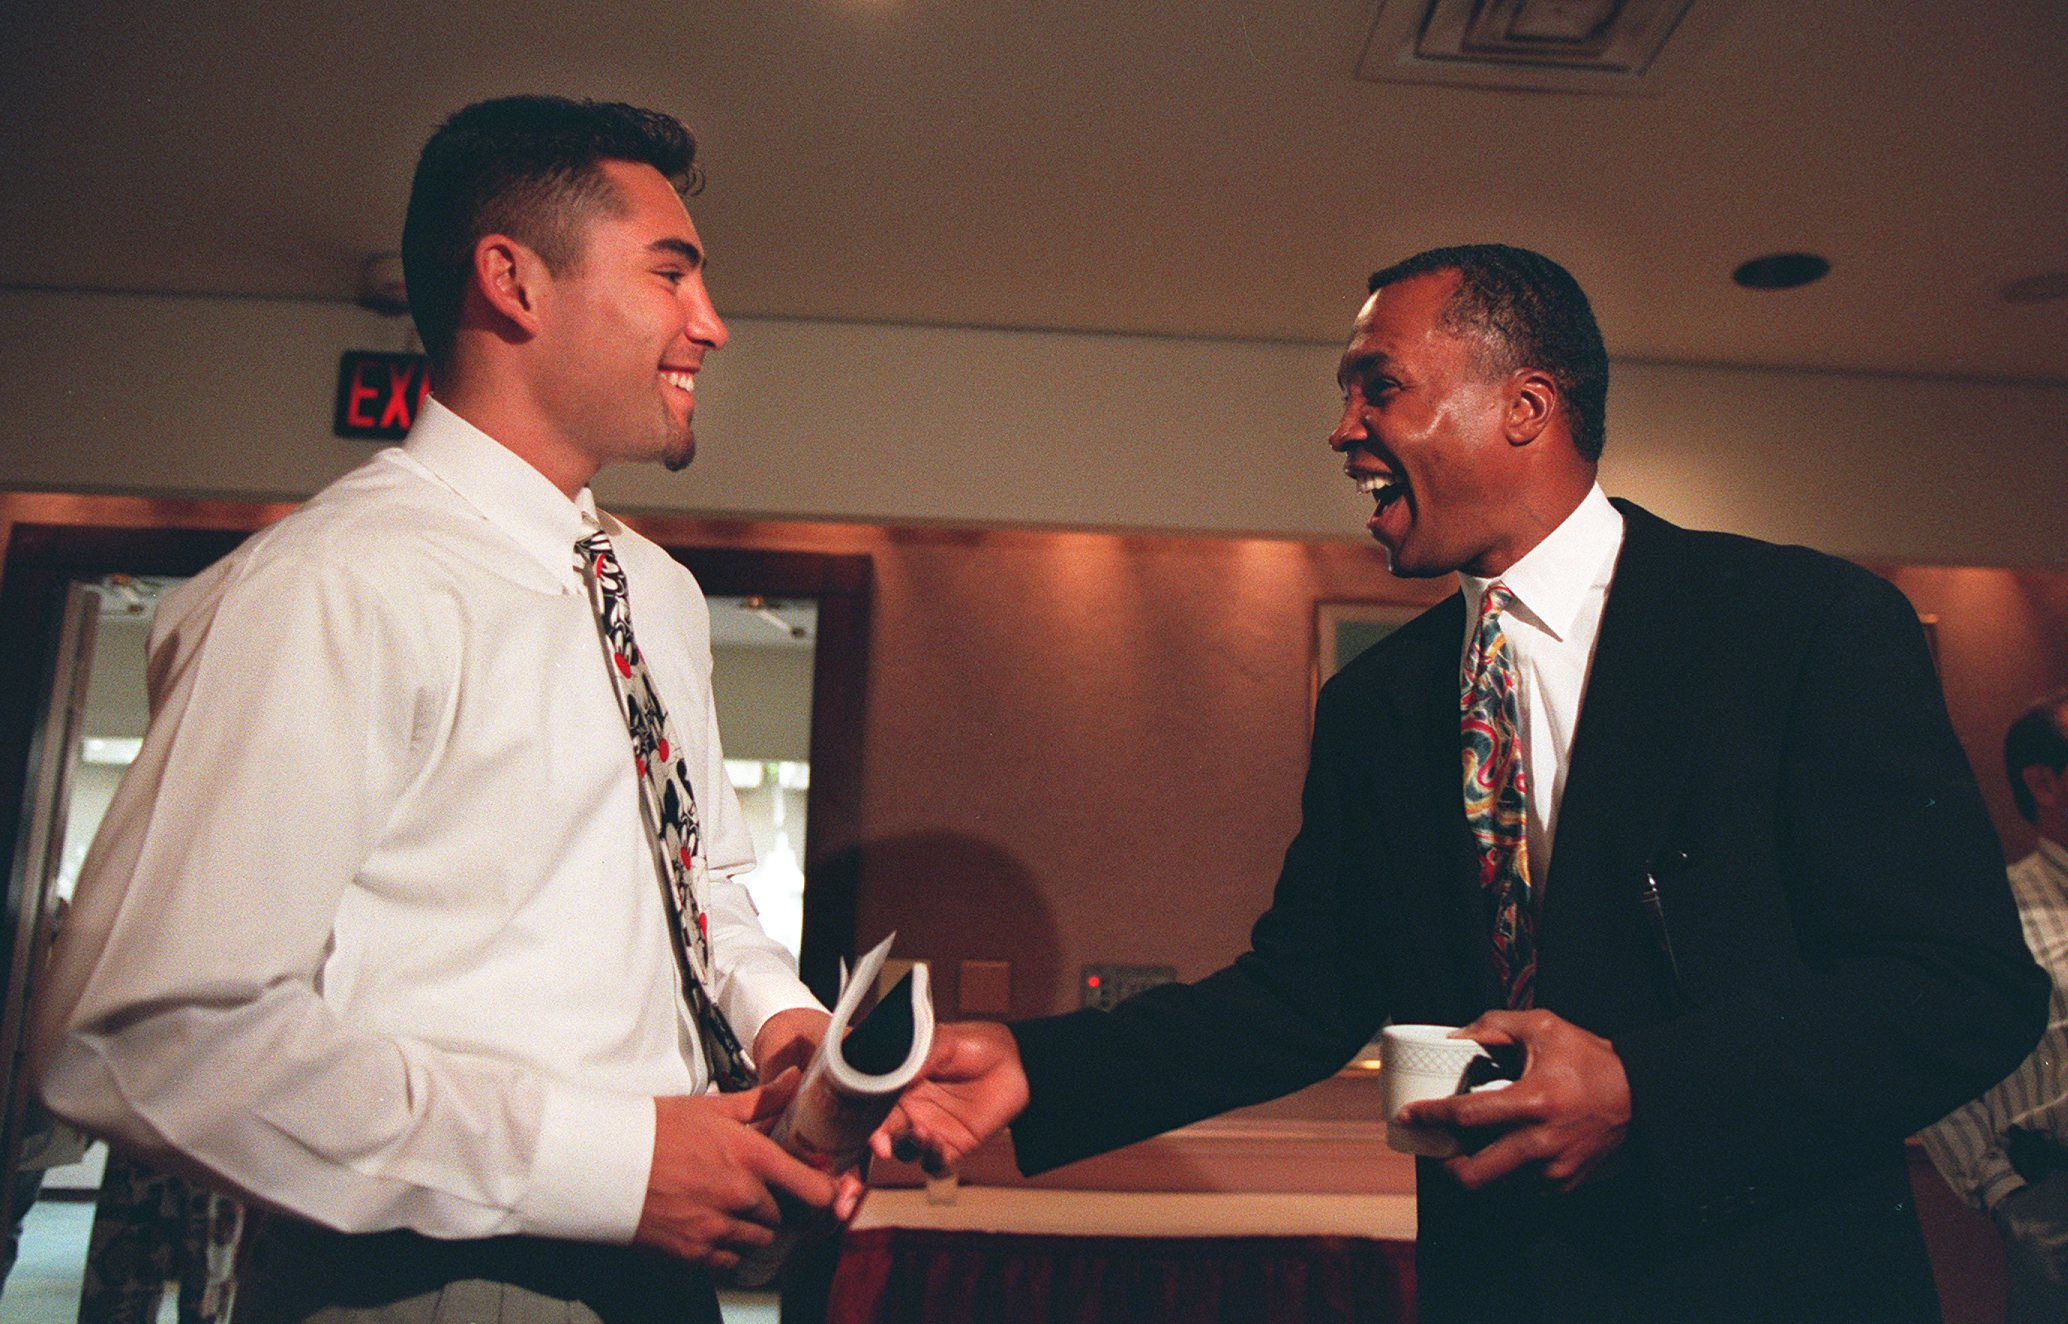 13 Apr 1994: 1992 OLYMPIC BOXING GOLD MEDALIST OSCAR DE LA HOYA, LEFT, SHARES A LAUGH WITH 1976 OLYMPIC BOXING GOLD MEDALIST SUGAR RAY LEONARD DURING A PRESS CONFERENCE PROMOTING DE LA HOYA''S UPCOMING FIGHT AGAINST GIORGIO CAMPANELLA IN LAS VEGAS NEXT MO